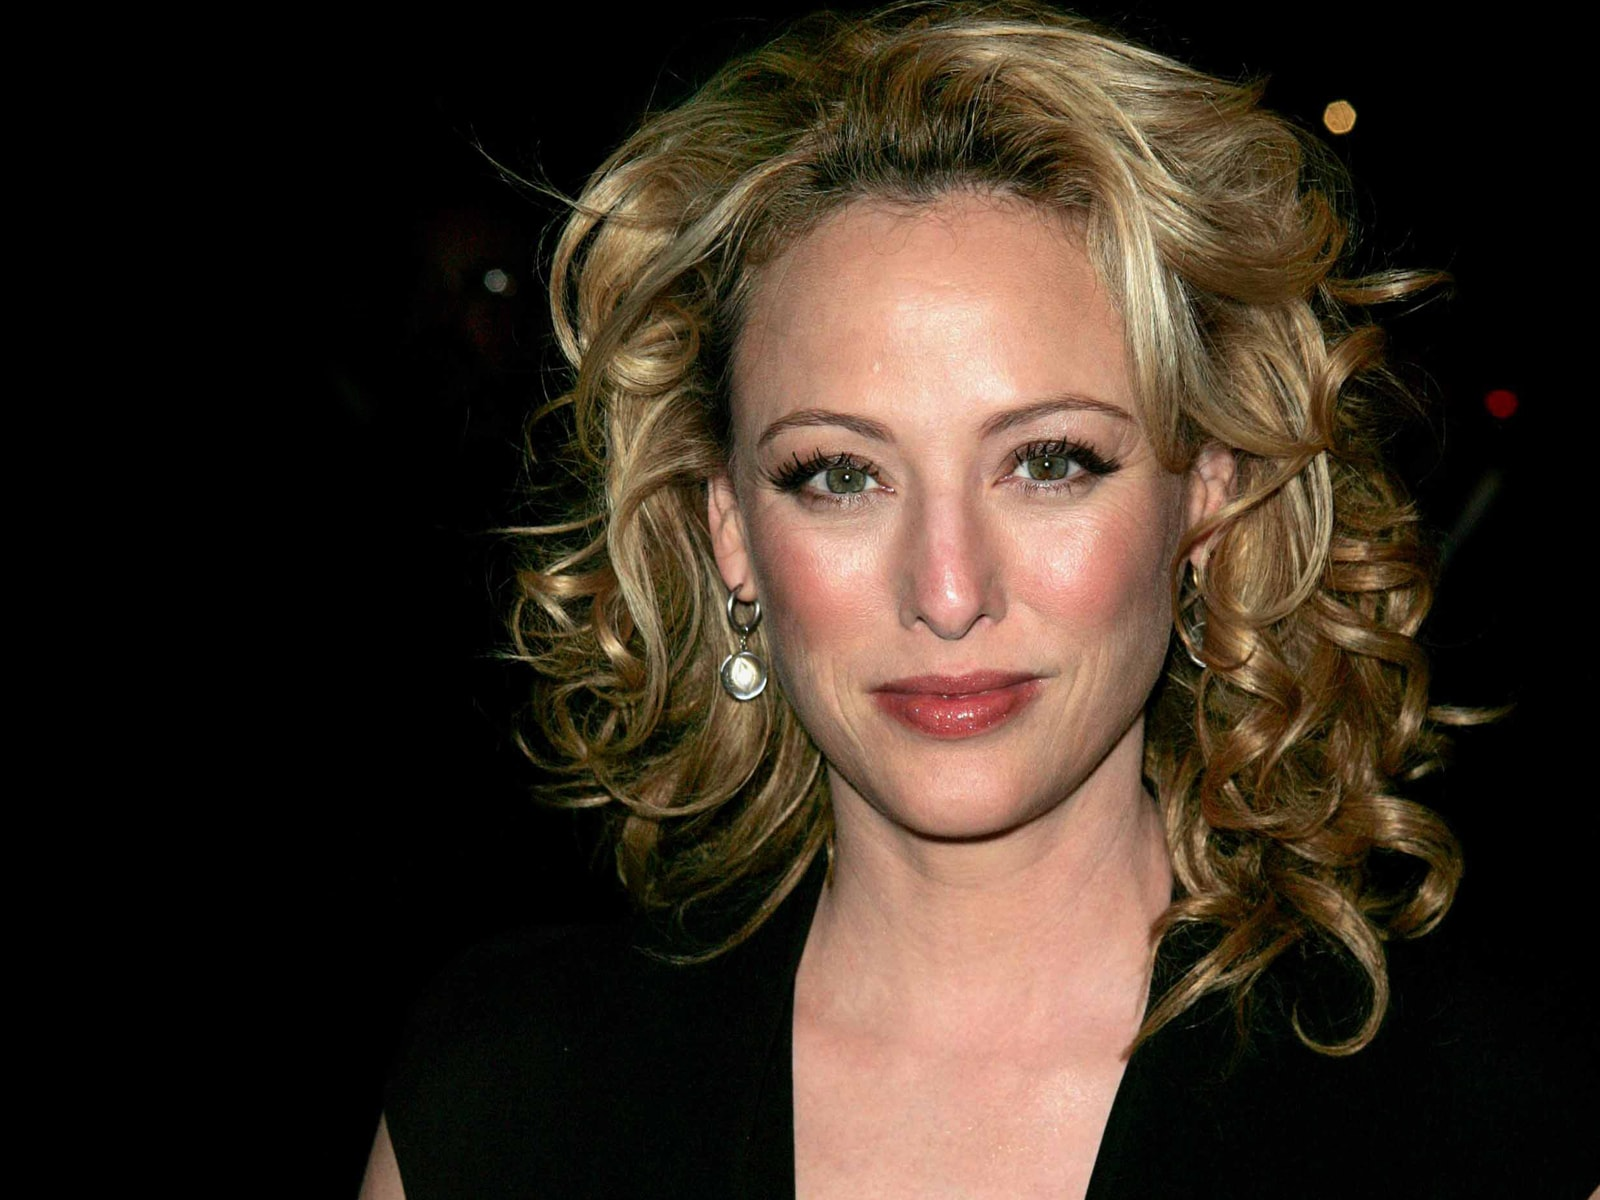 Virginia Madsen widescreen wallpapers